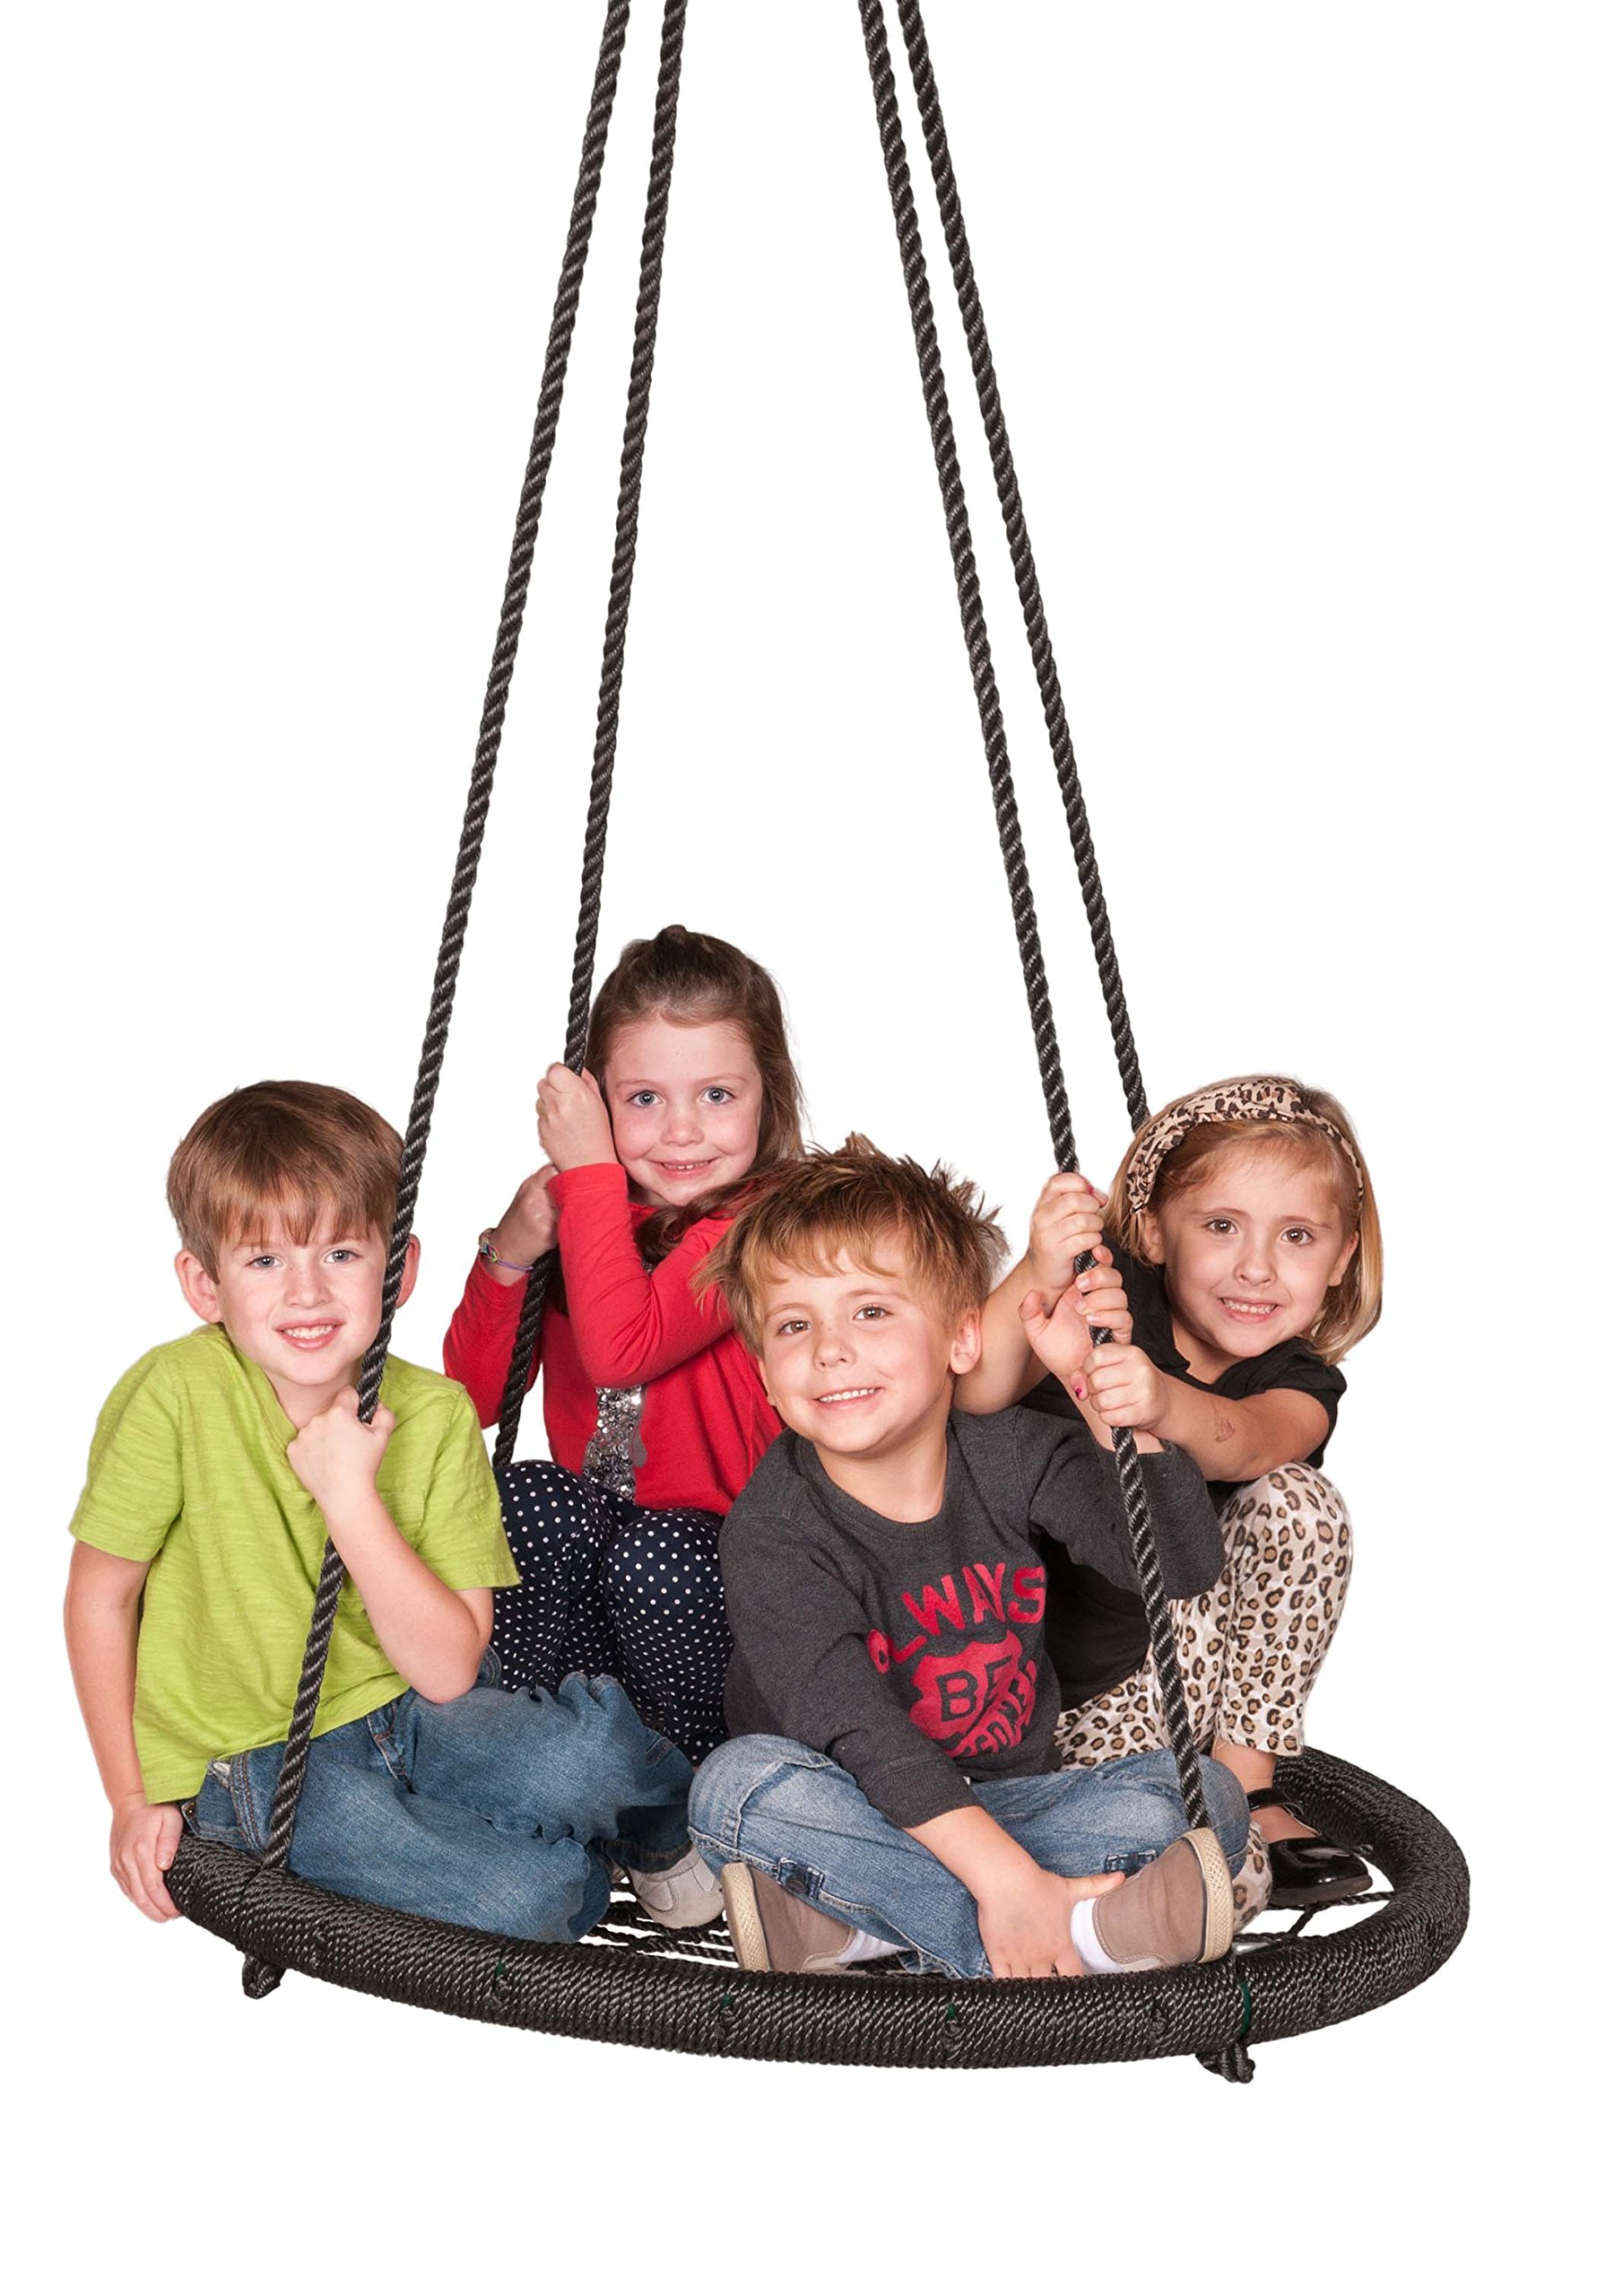 M & M Sales Enterprises Web Riderz Outdoor Swing N' Spin- Safety Rated to 600 lb, 39 inch Diameter, Adjustable Hanging Ropes, Ready to Hang and Enjoy as a Family by M & M Sales Enterprises